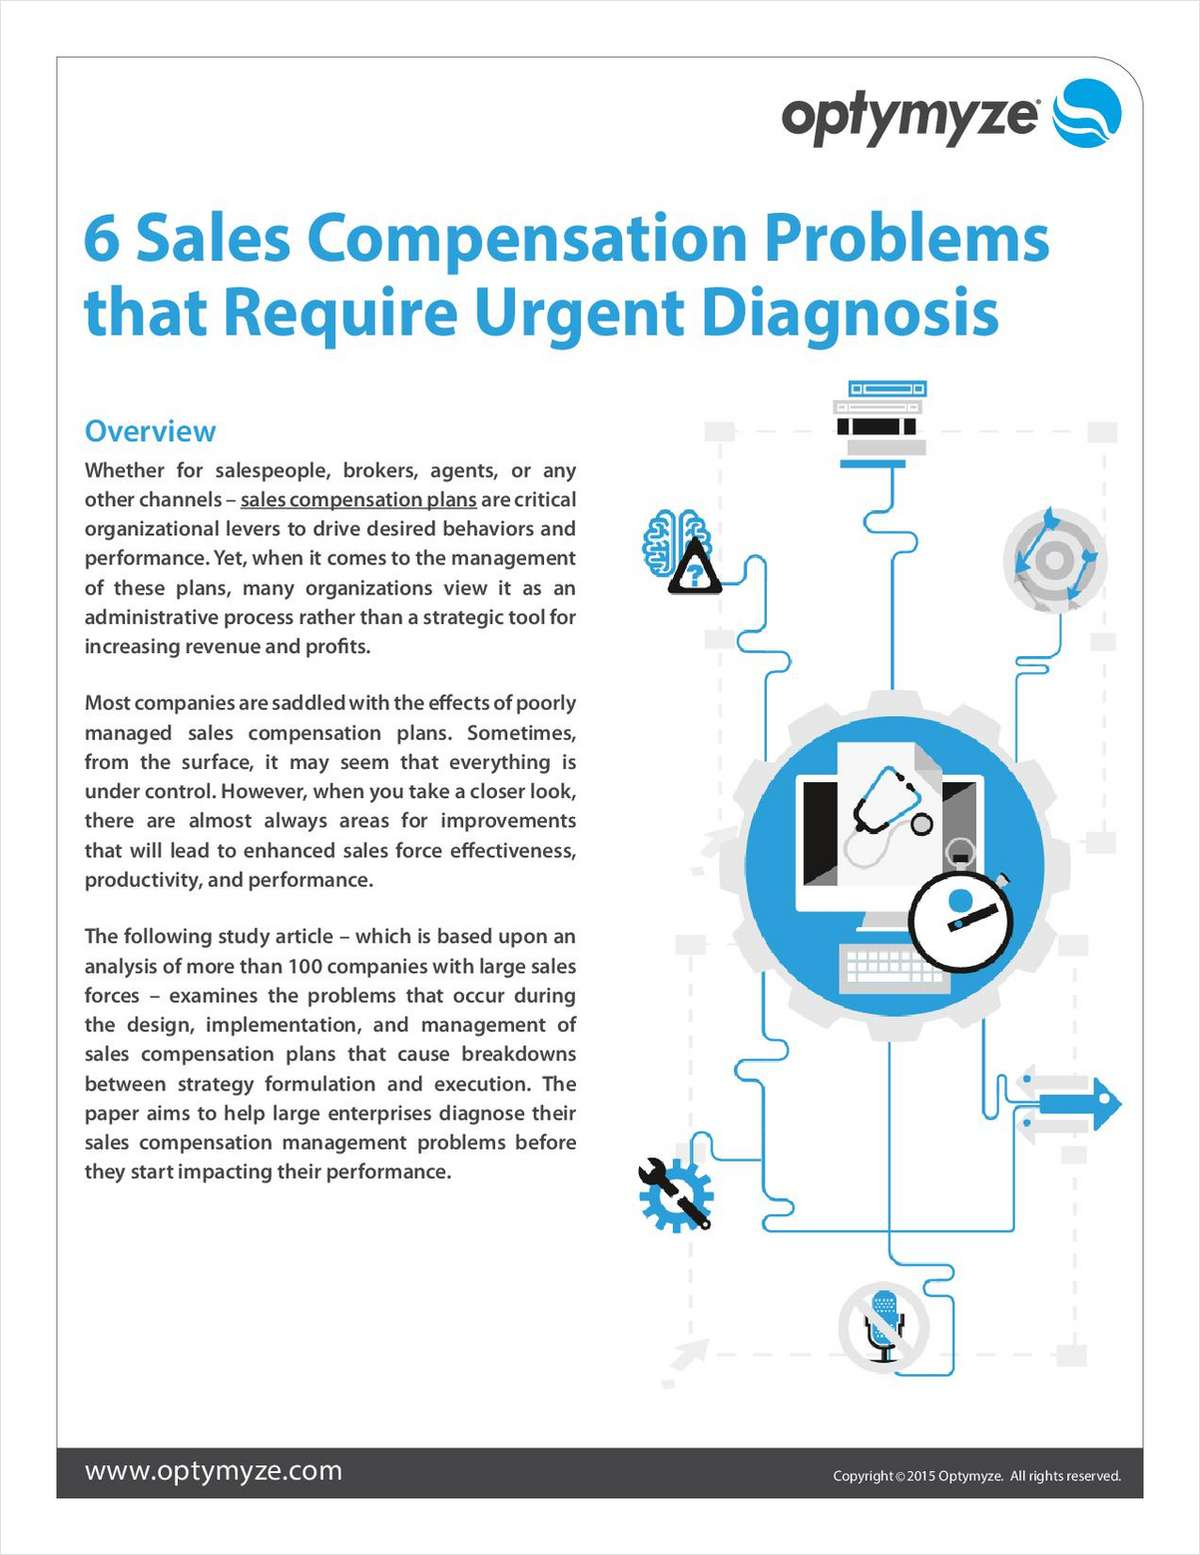 6 Sales Compensation Problems that Need Urgent Diagnosis